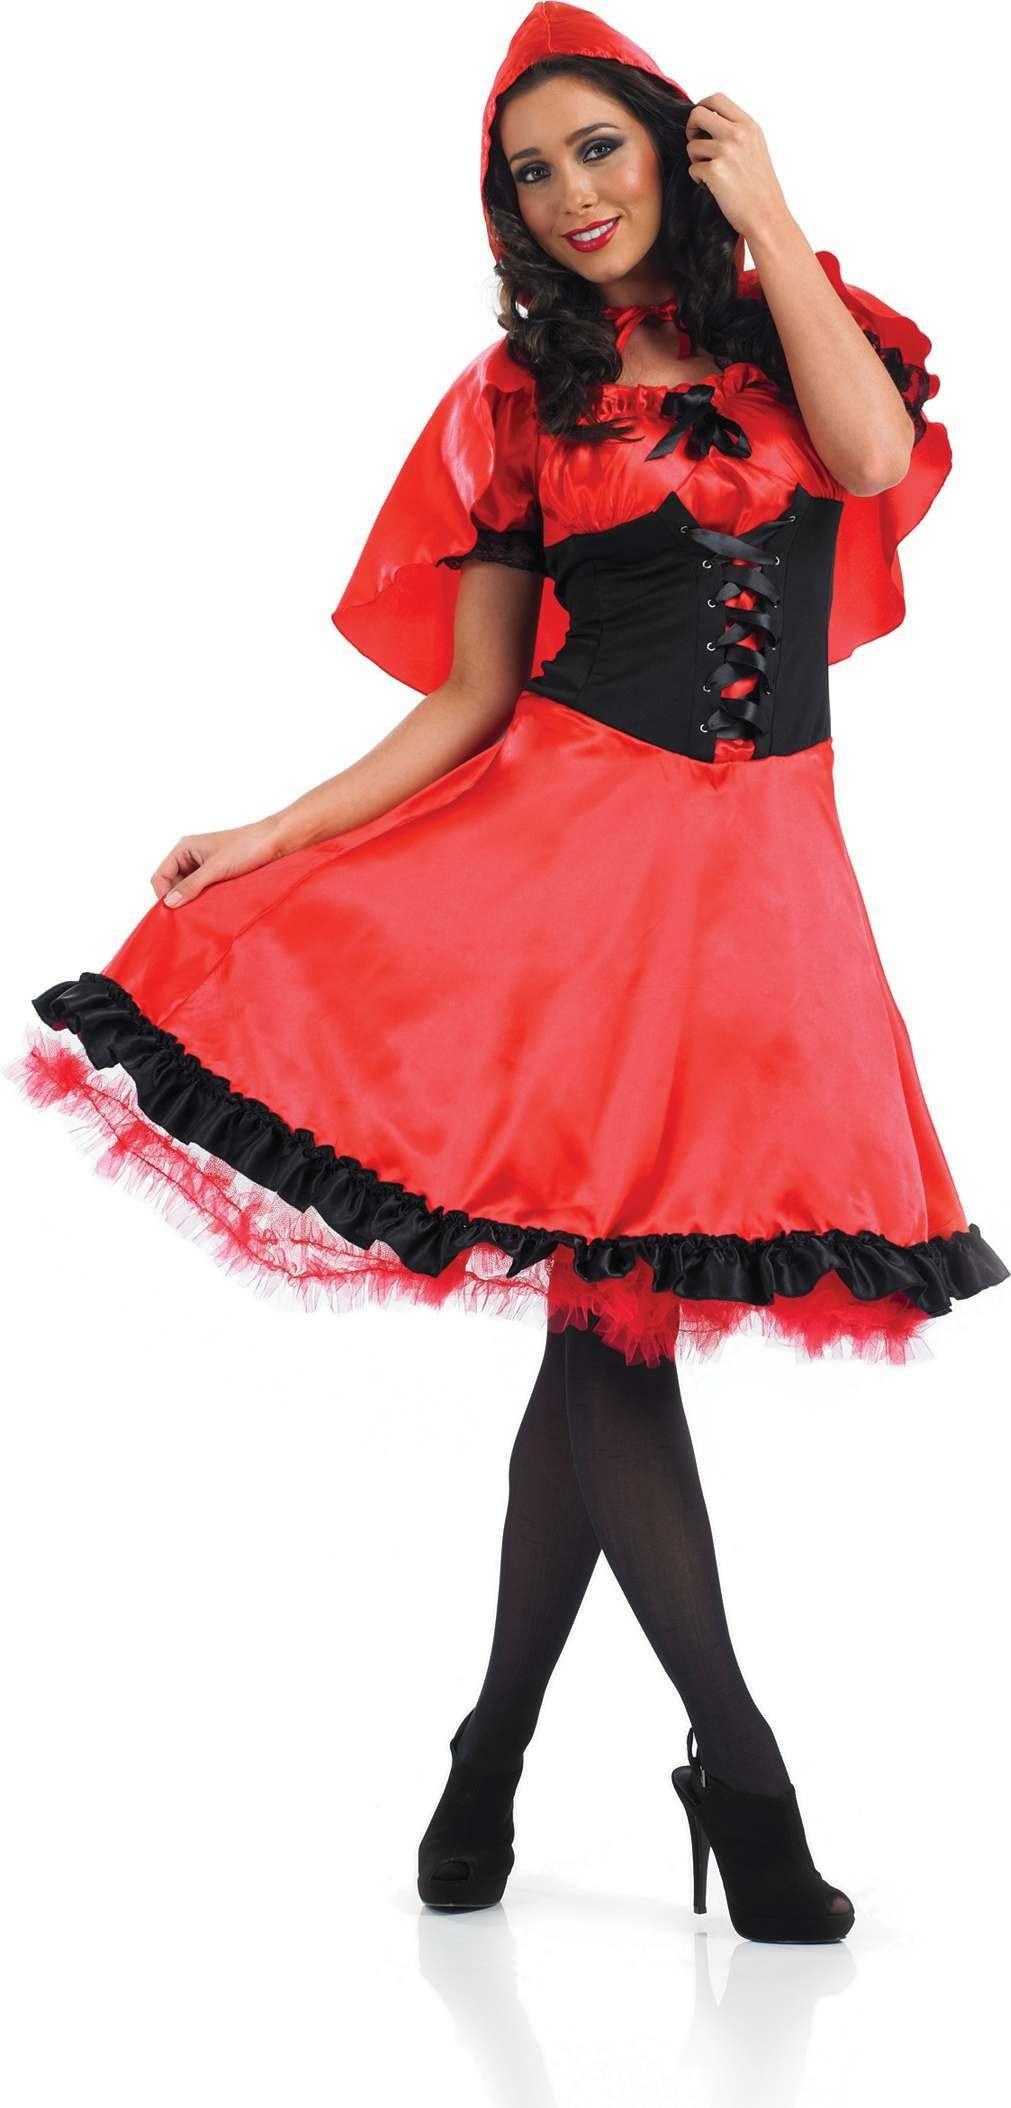 Longer Length Red Riding Hood Fancy Dress Costume